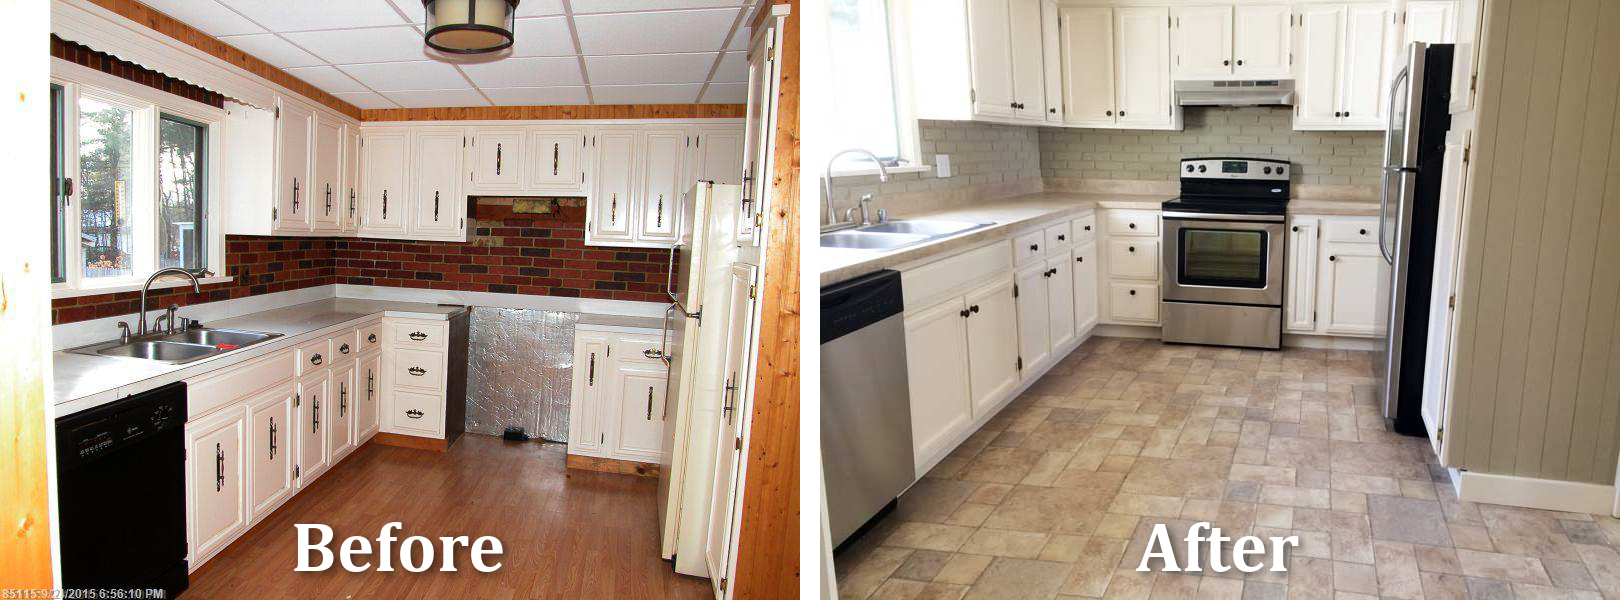 sanford-maine-home-remodeling-kitchen-before-after